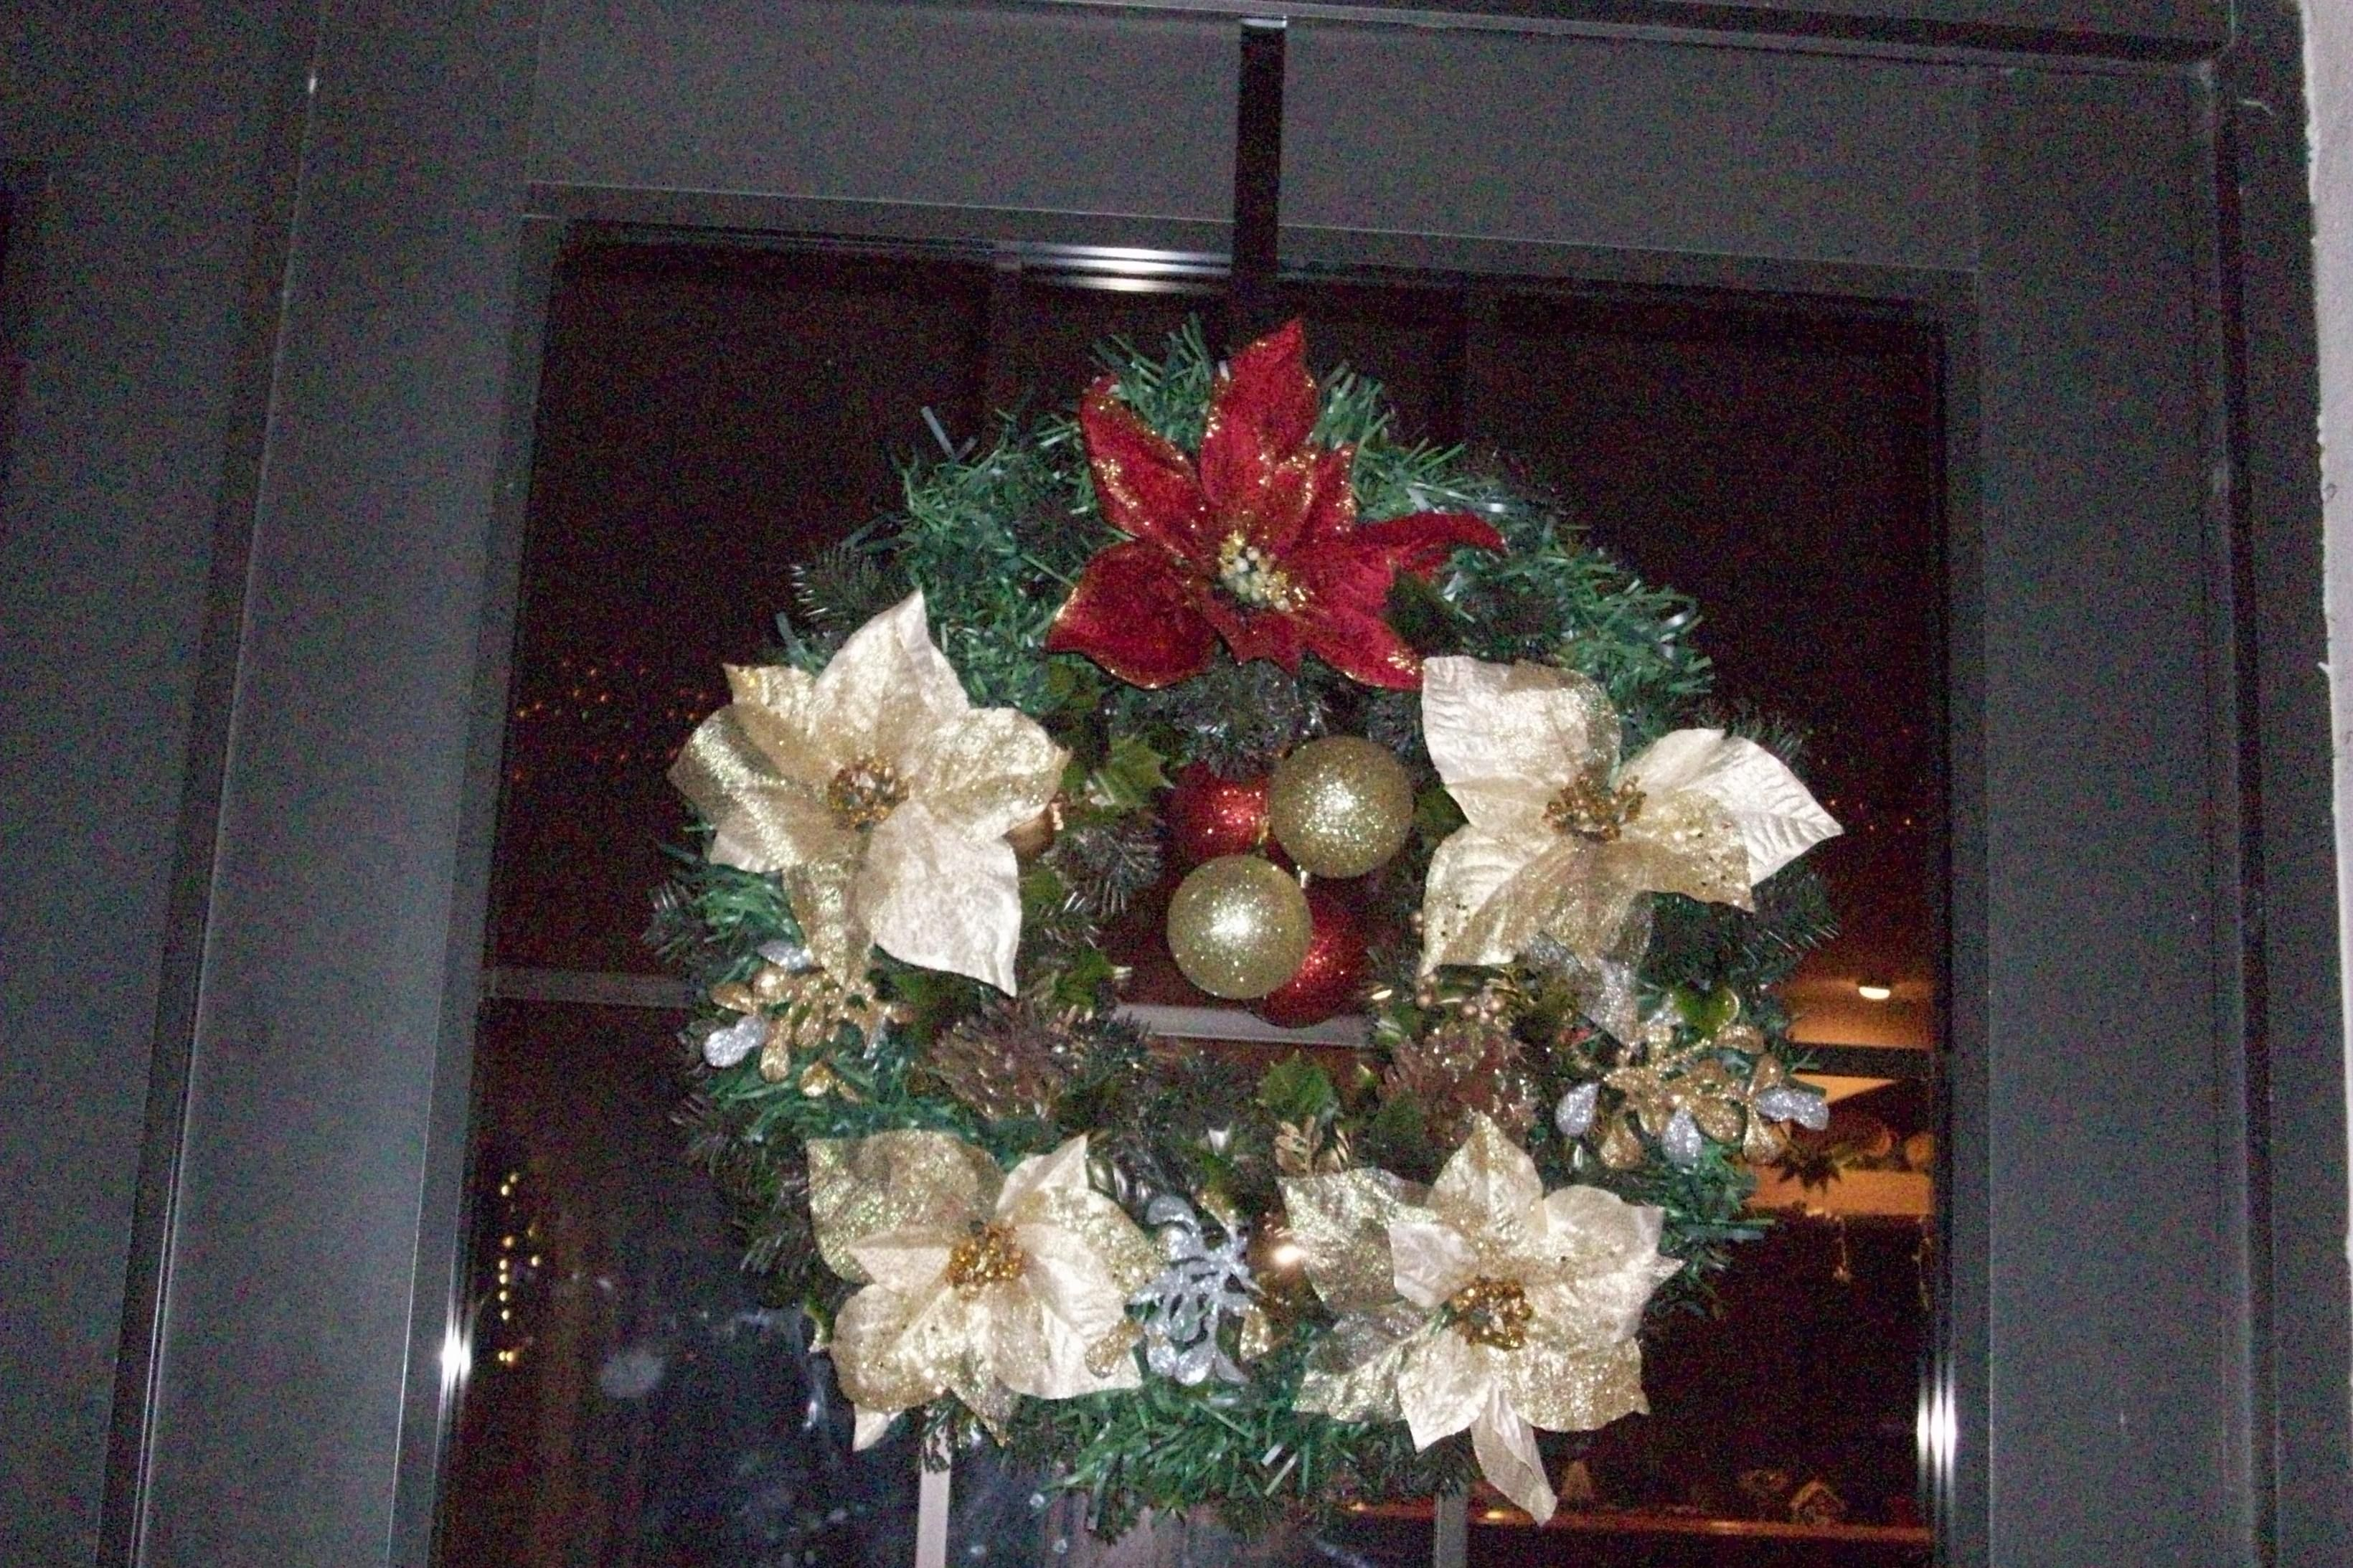 One of my Christmas wreaths